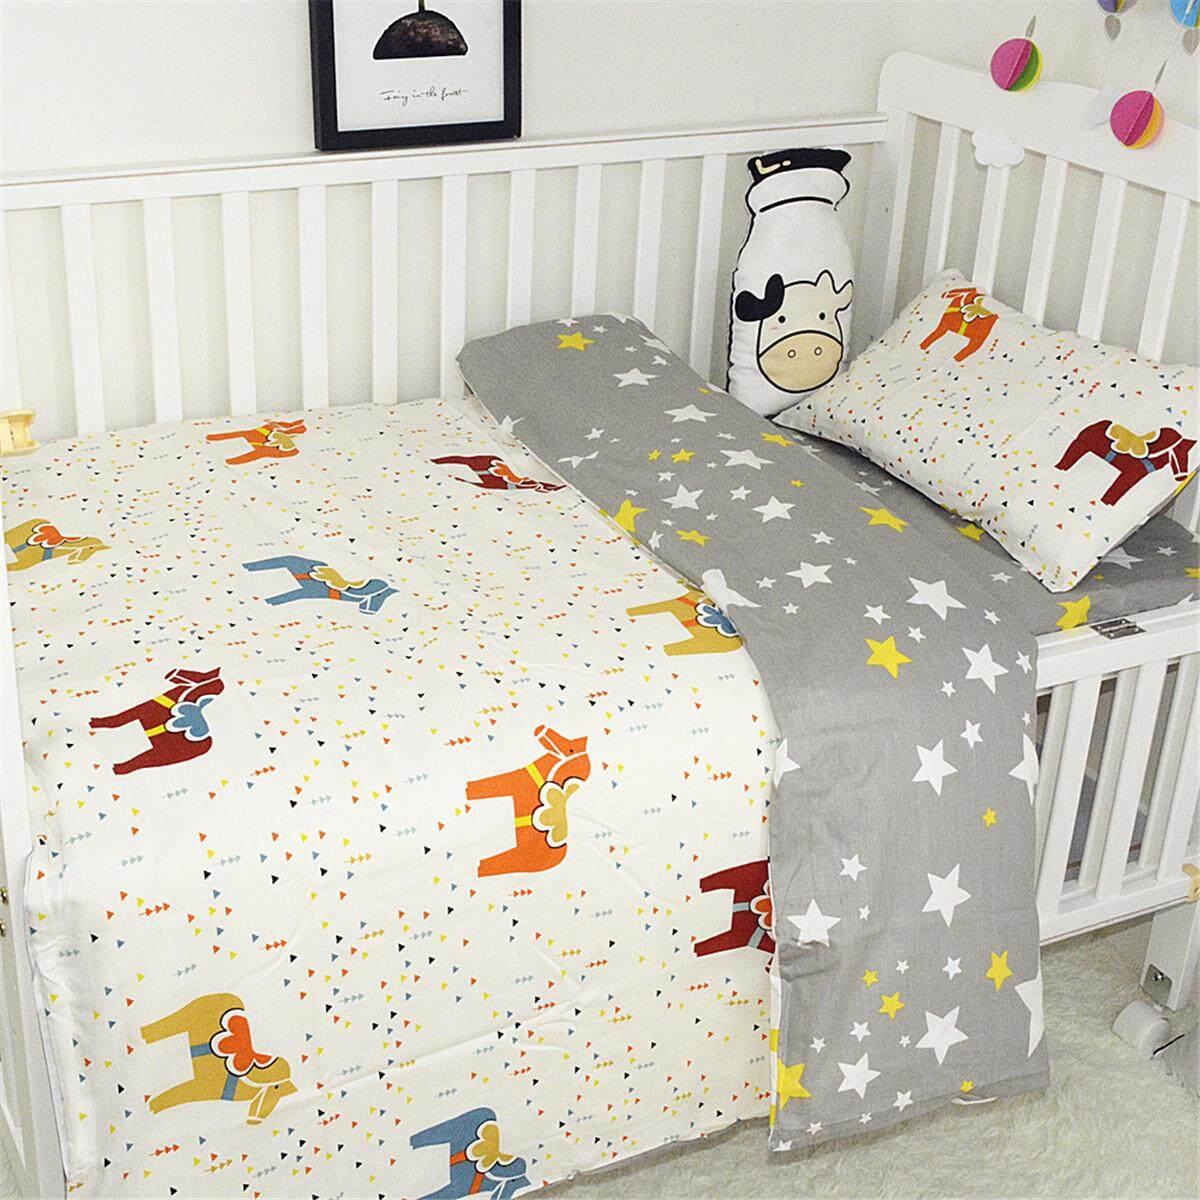 Baby Bedding Reversible Cot Quilt Cover Set Pillowcase Nursery Bed Animals By Freebang.